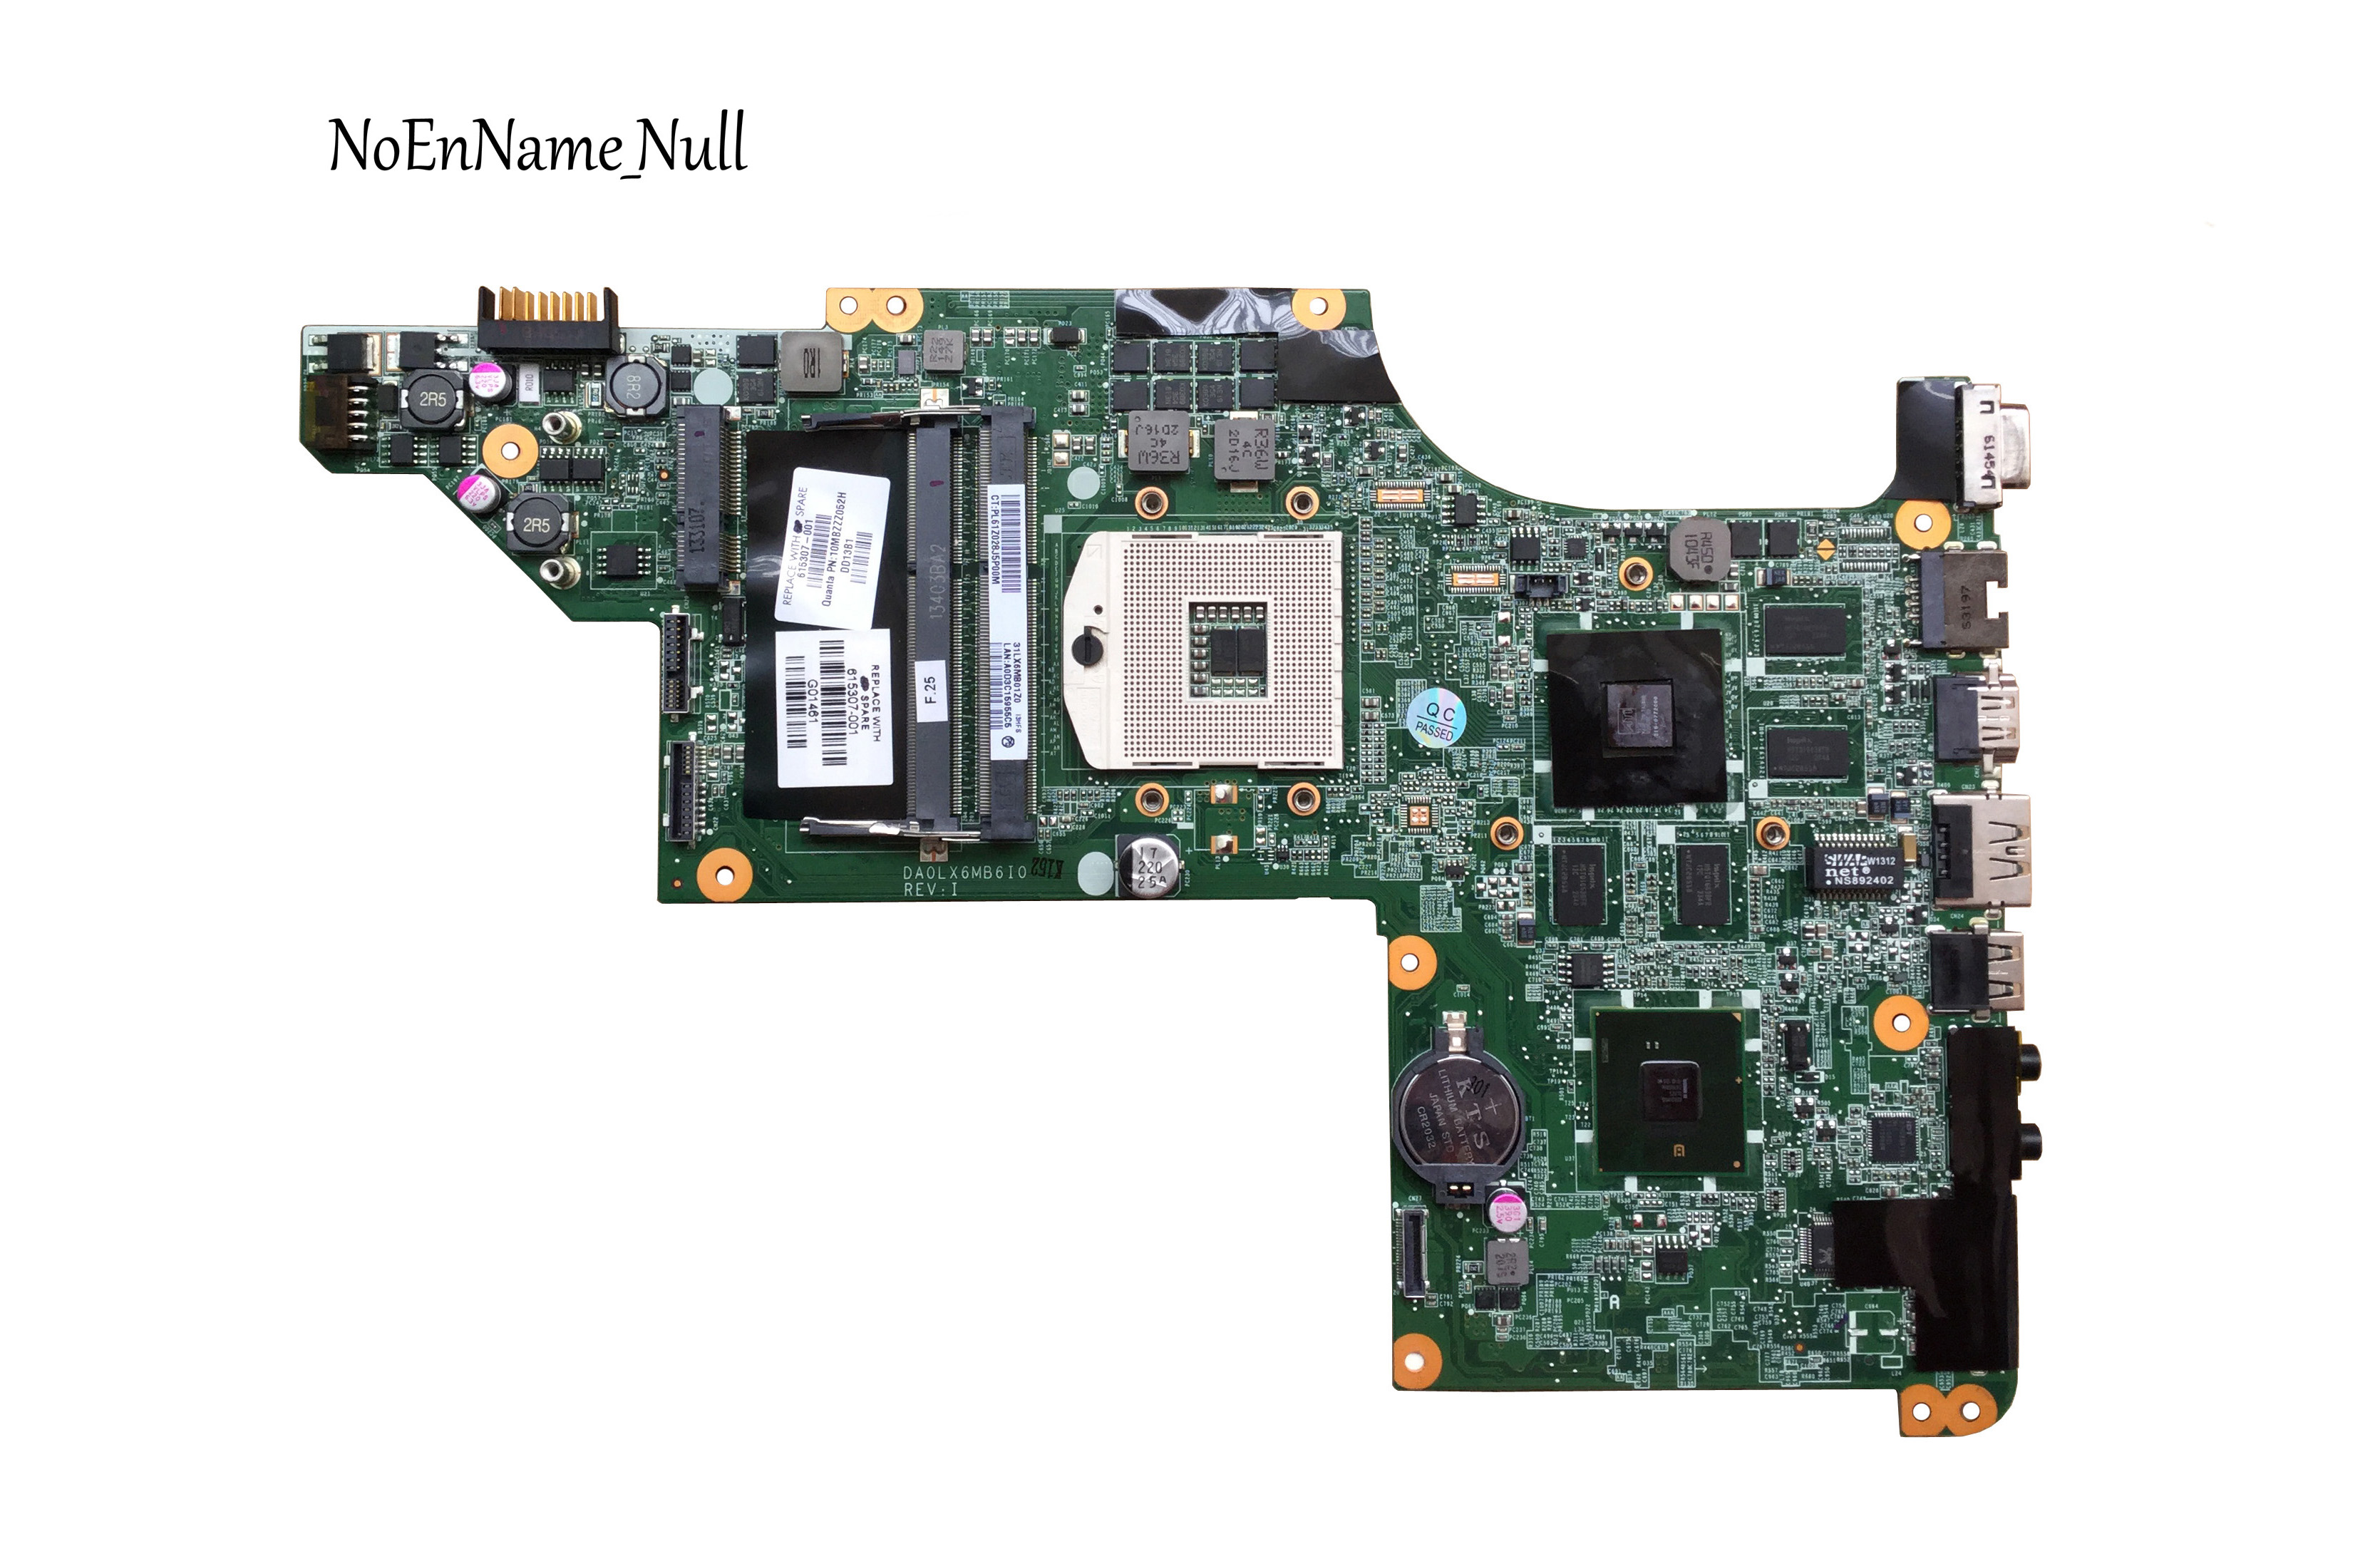 605320-001 Free Shipping Original Laptop Mainboard 615307-001 For HP Pavilion DV7 DV7-4000 Motherboard DA0LX6MB6H1